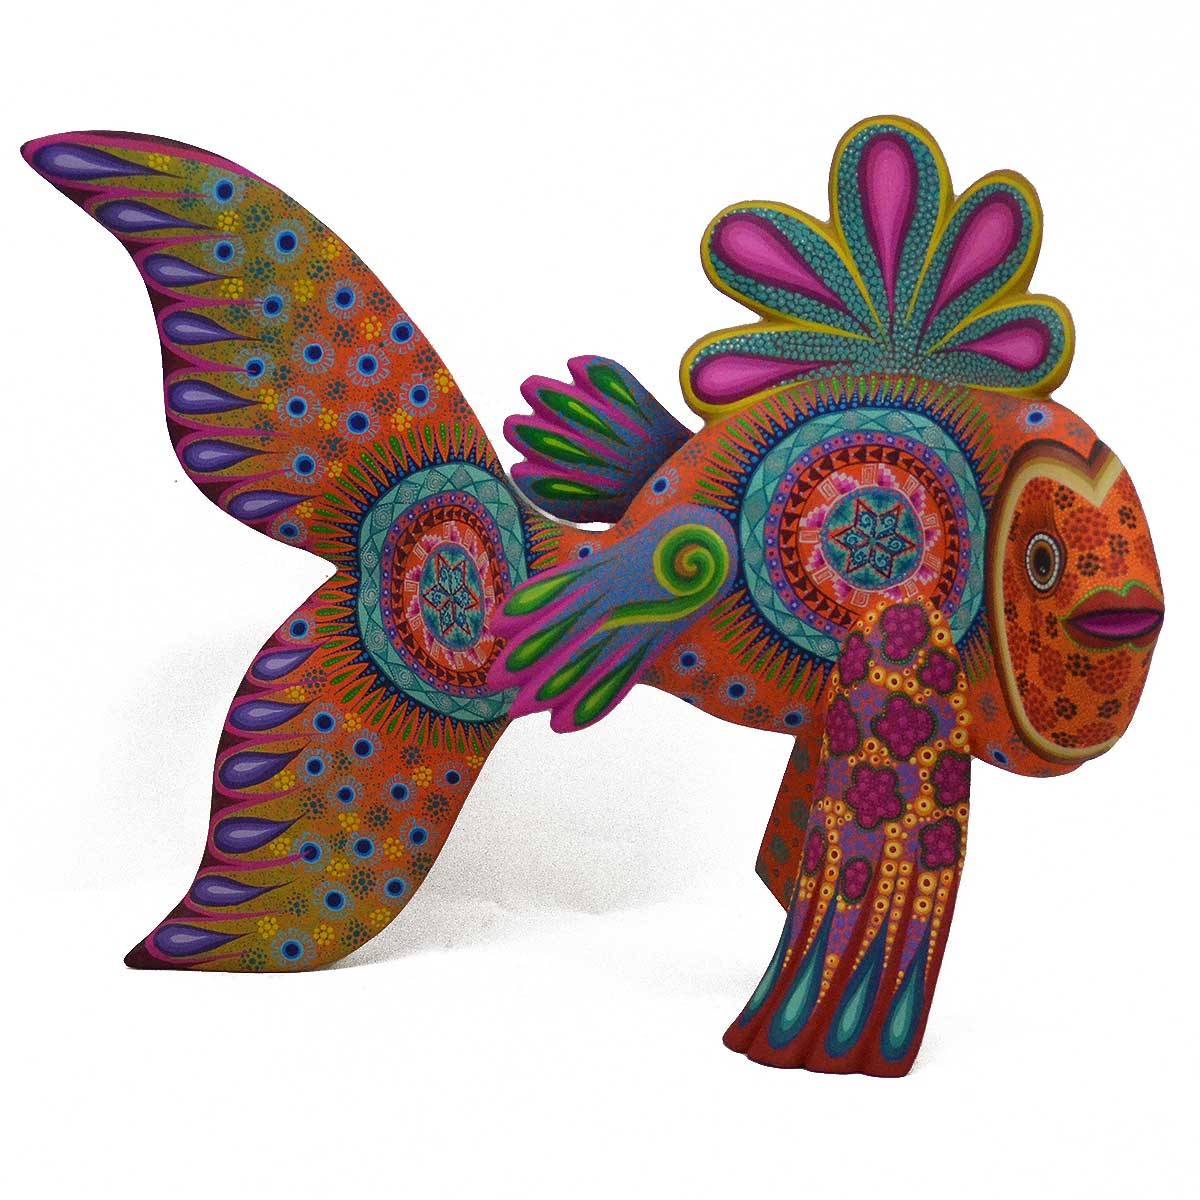 Ivan Fuentes and Mayte Calvo Fish Oaxacan Wood Carving